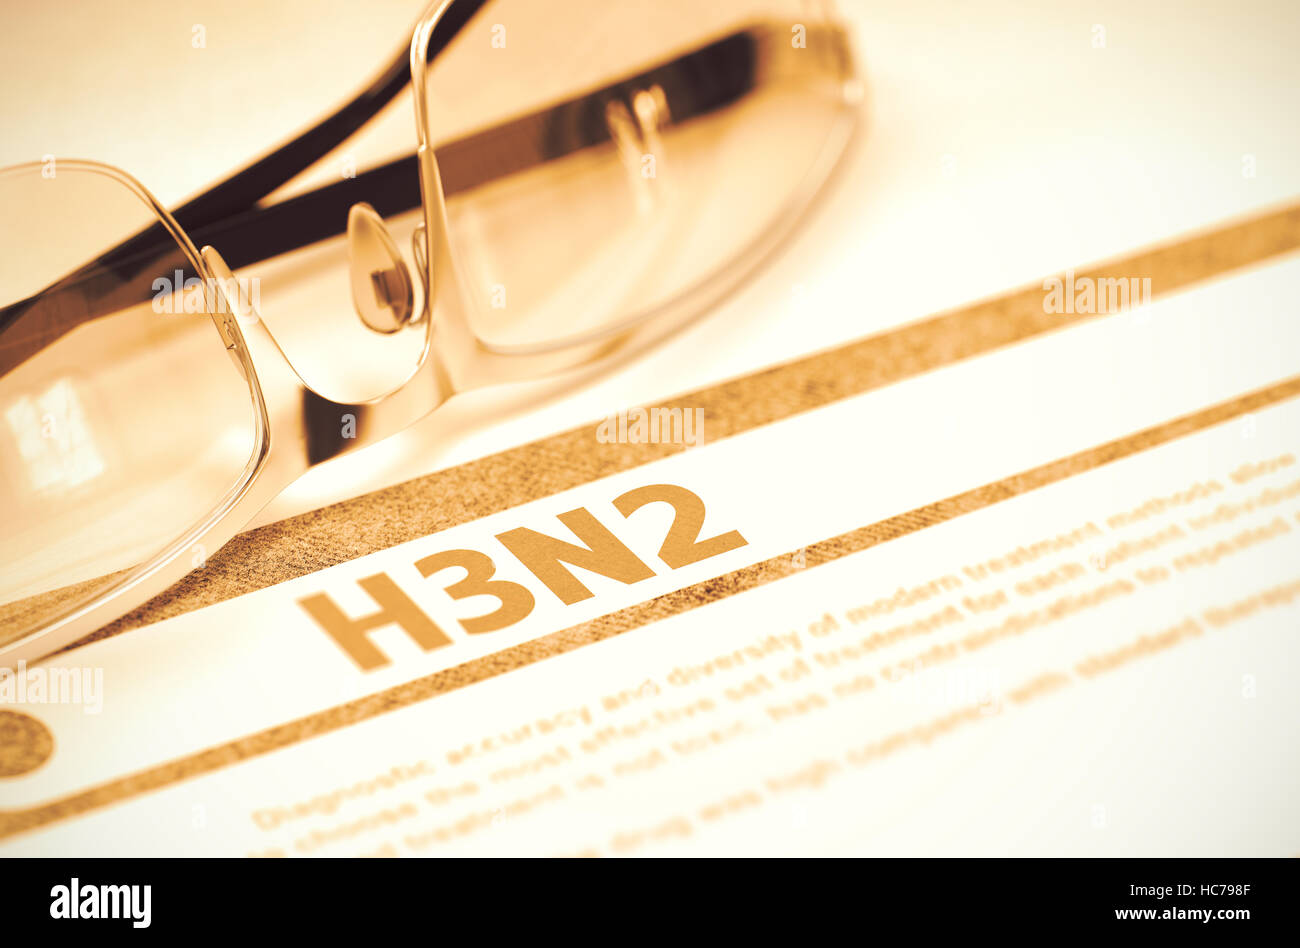 H3N2 - Printed Diagnosis on Red Background. 3D Illustration. - Stock Image